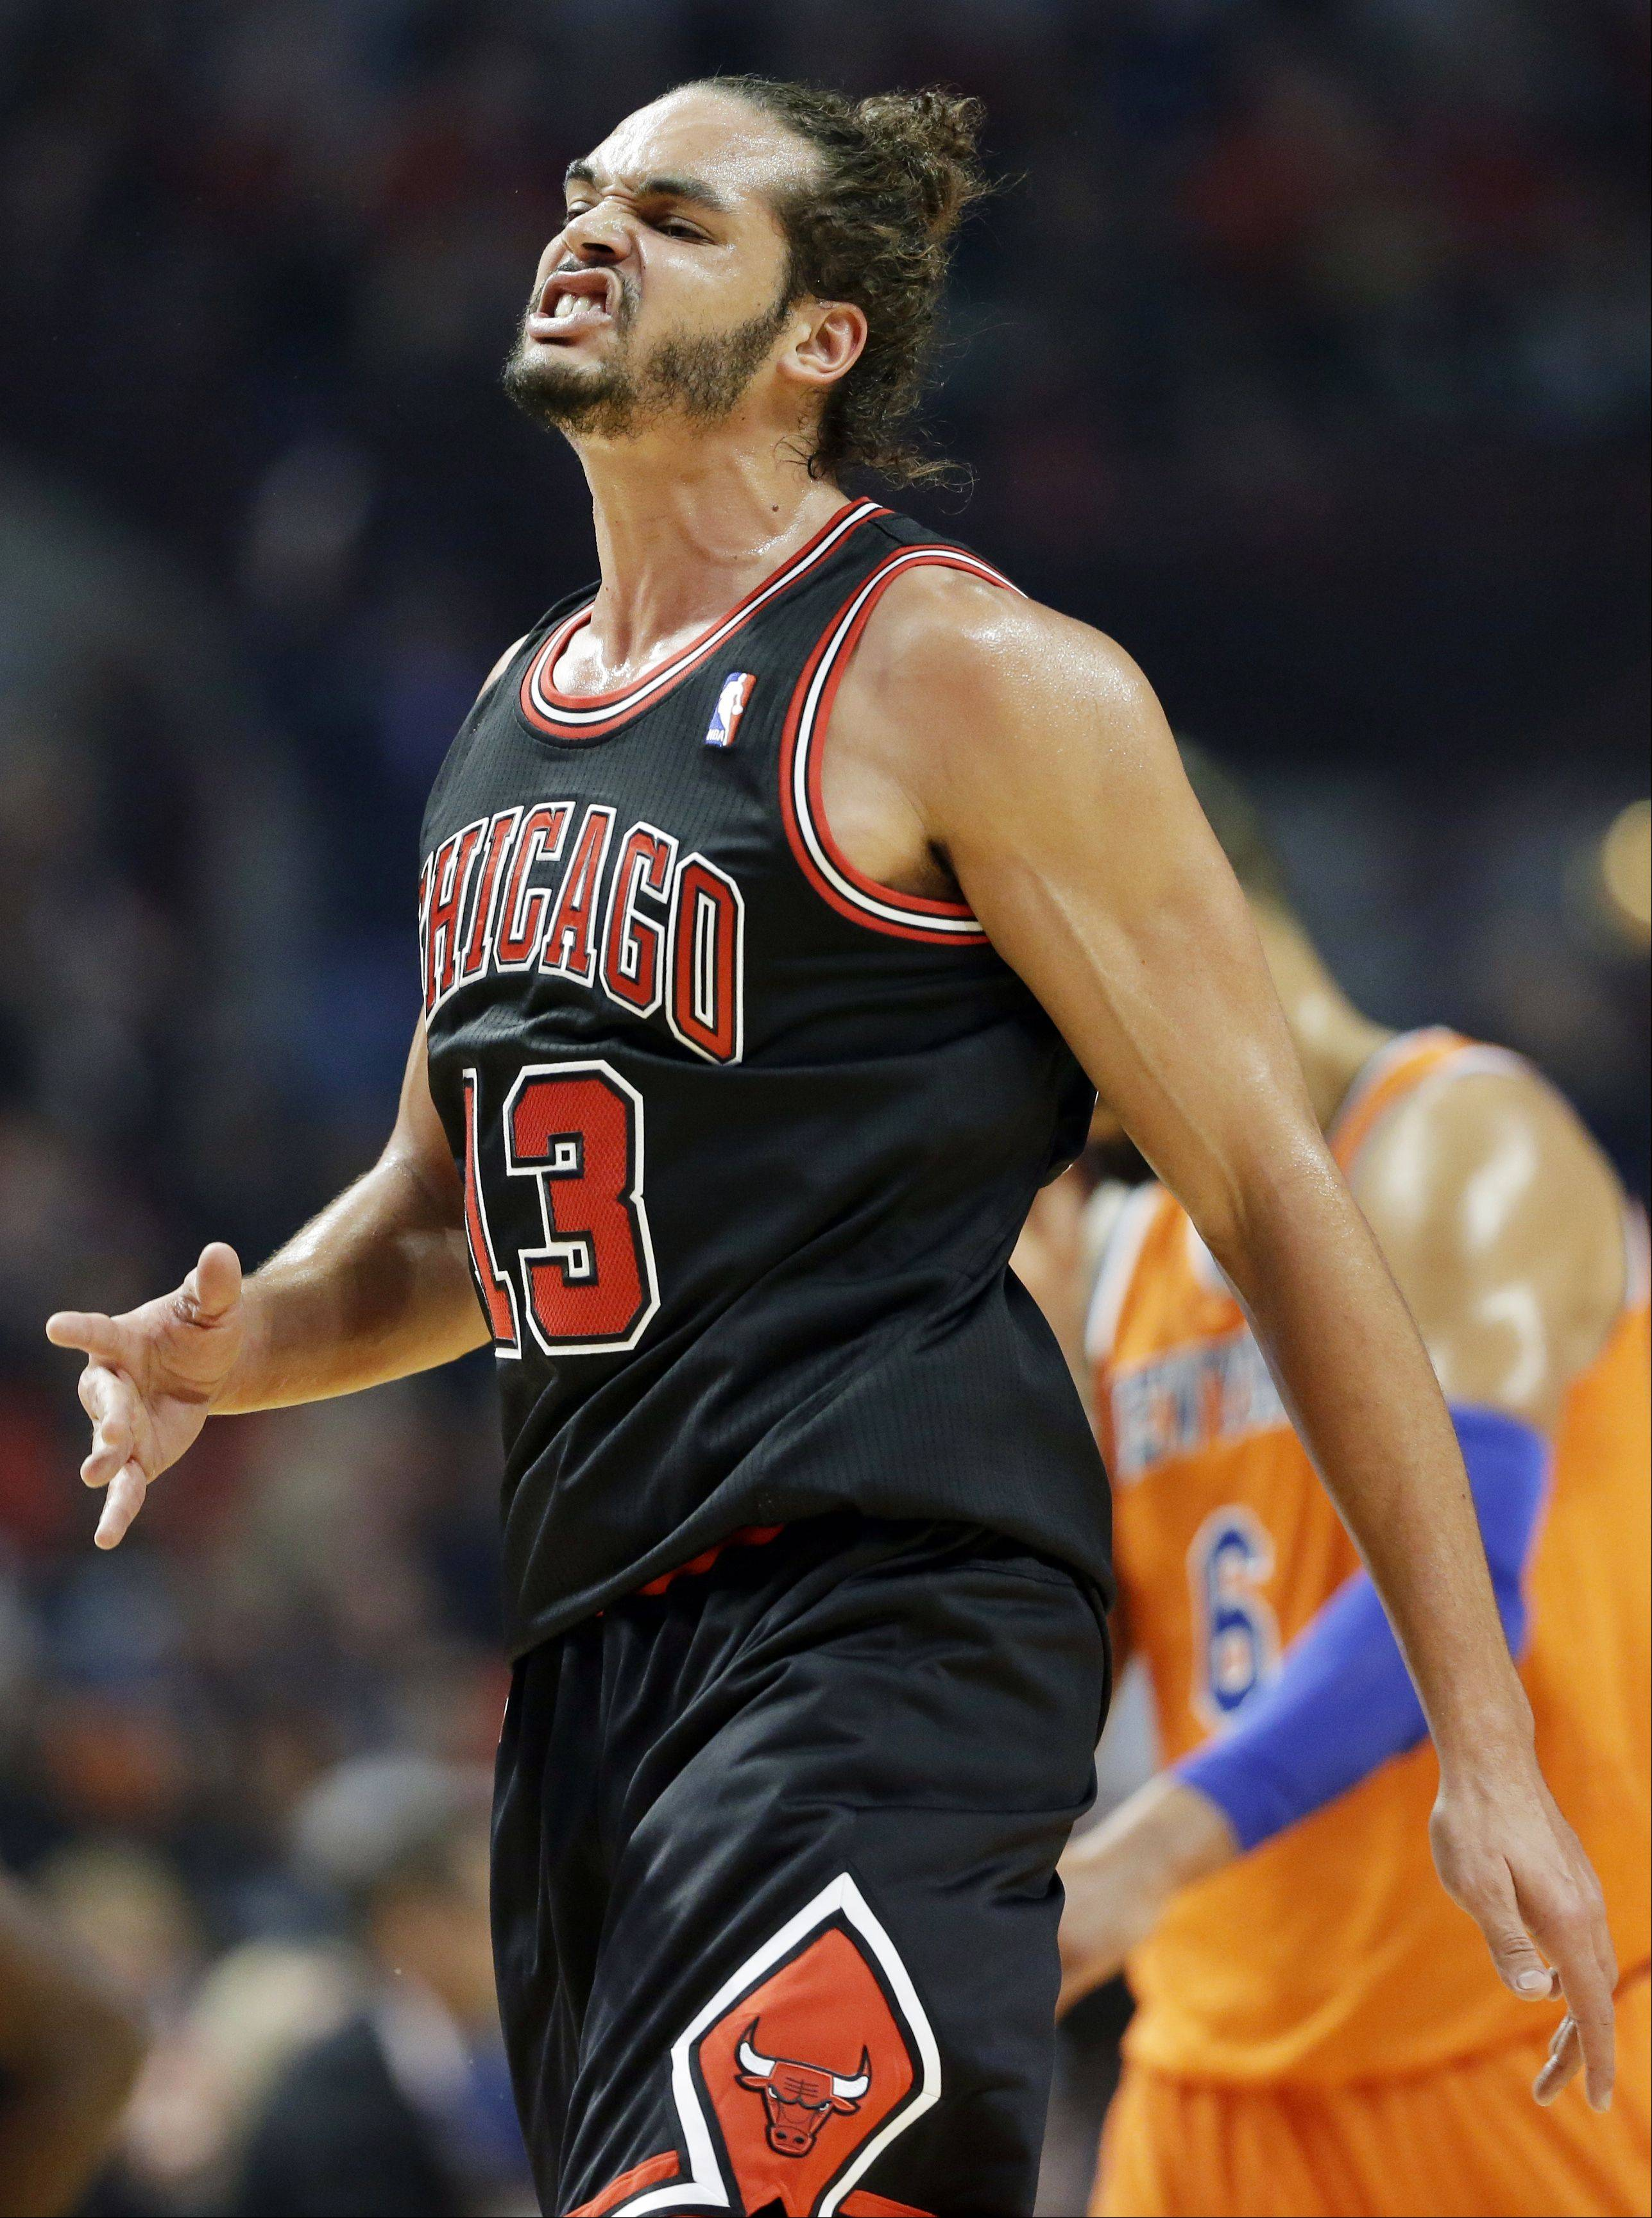 Chicago Bulls center Joakim Noah reacts after Derrick Rose scored a basket during the first half of an NBA basketball game against the New York Knicks.